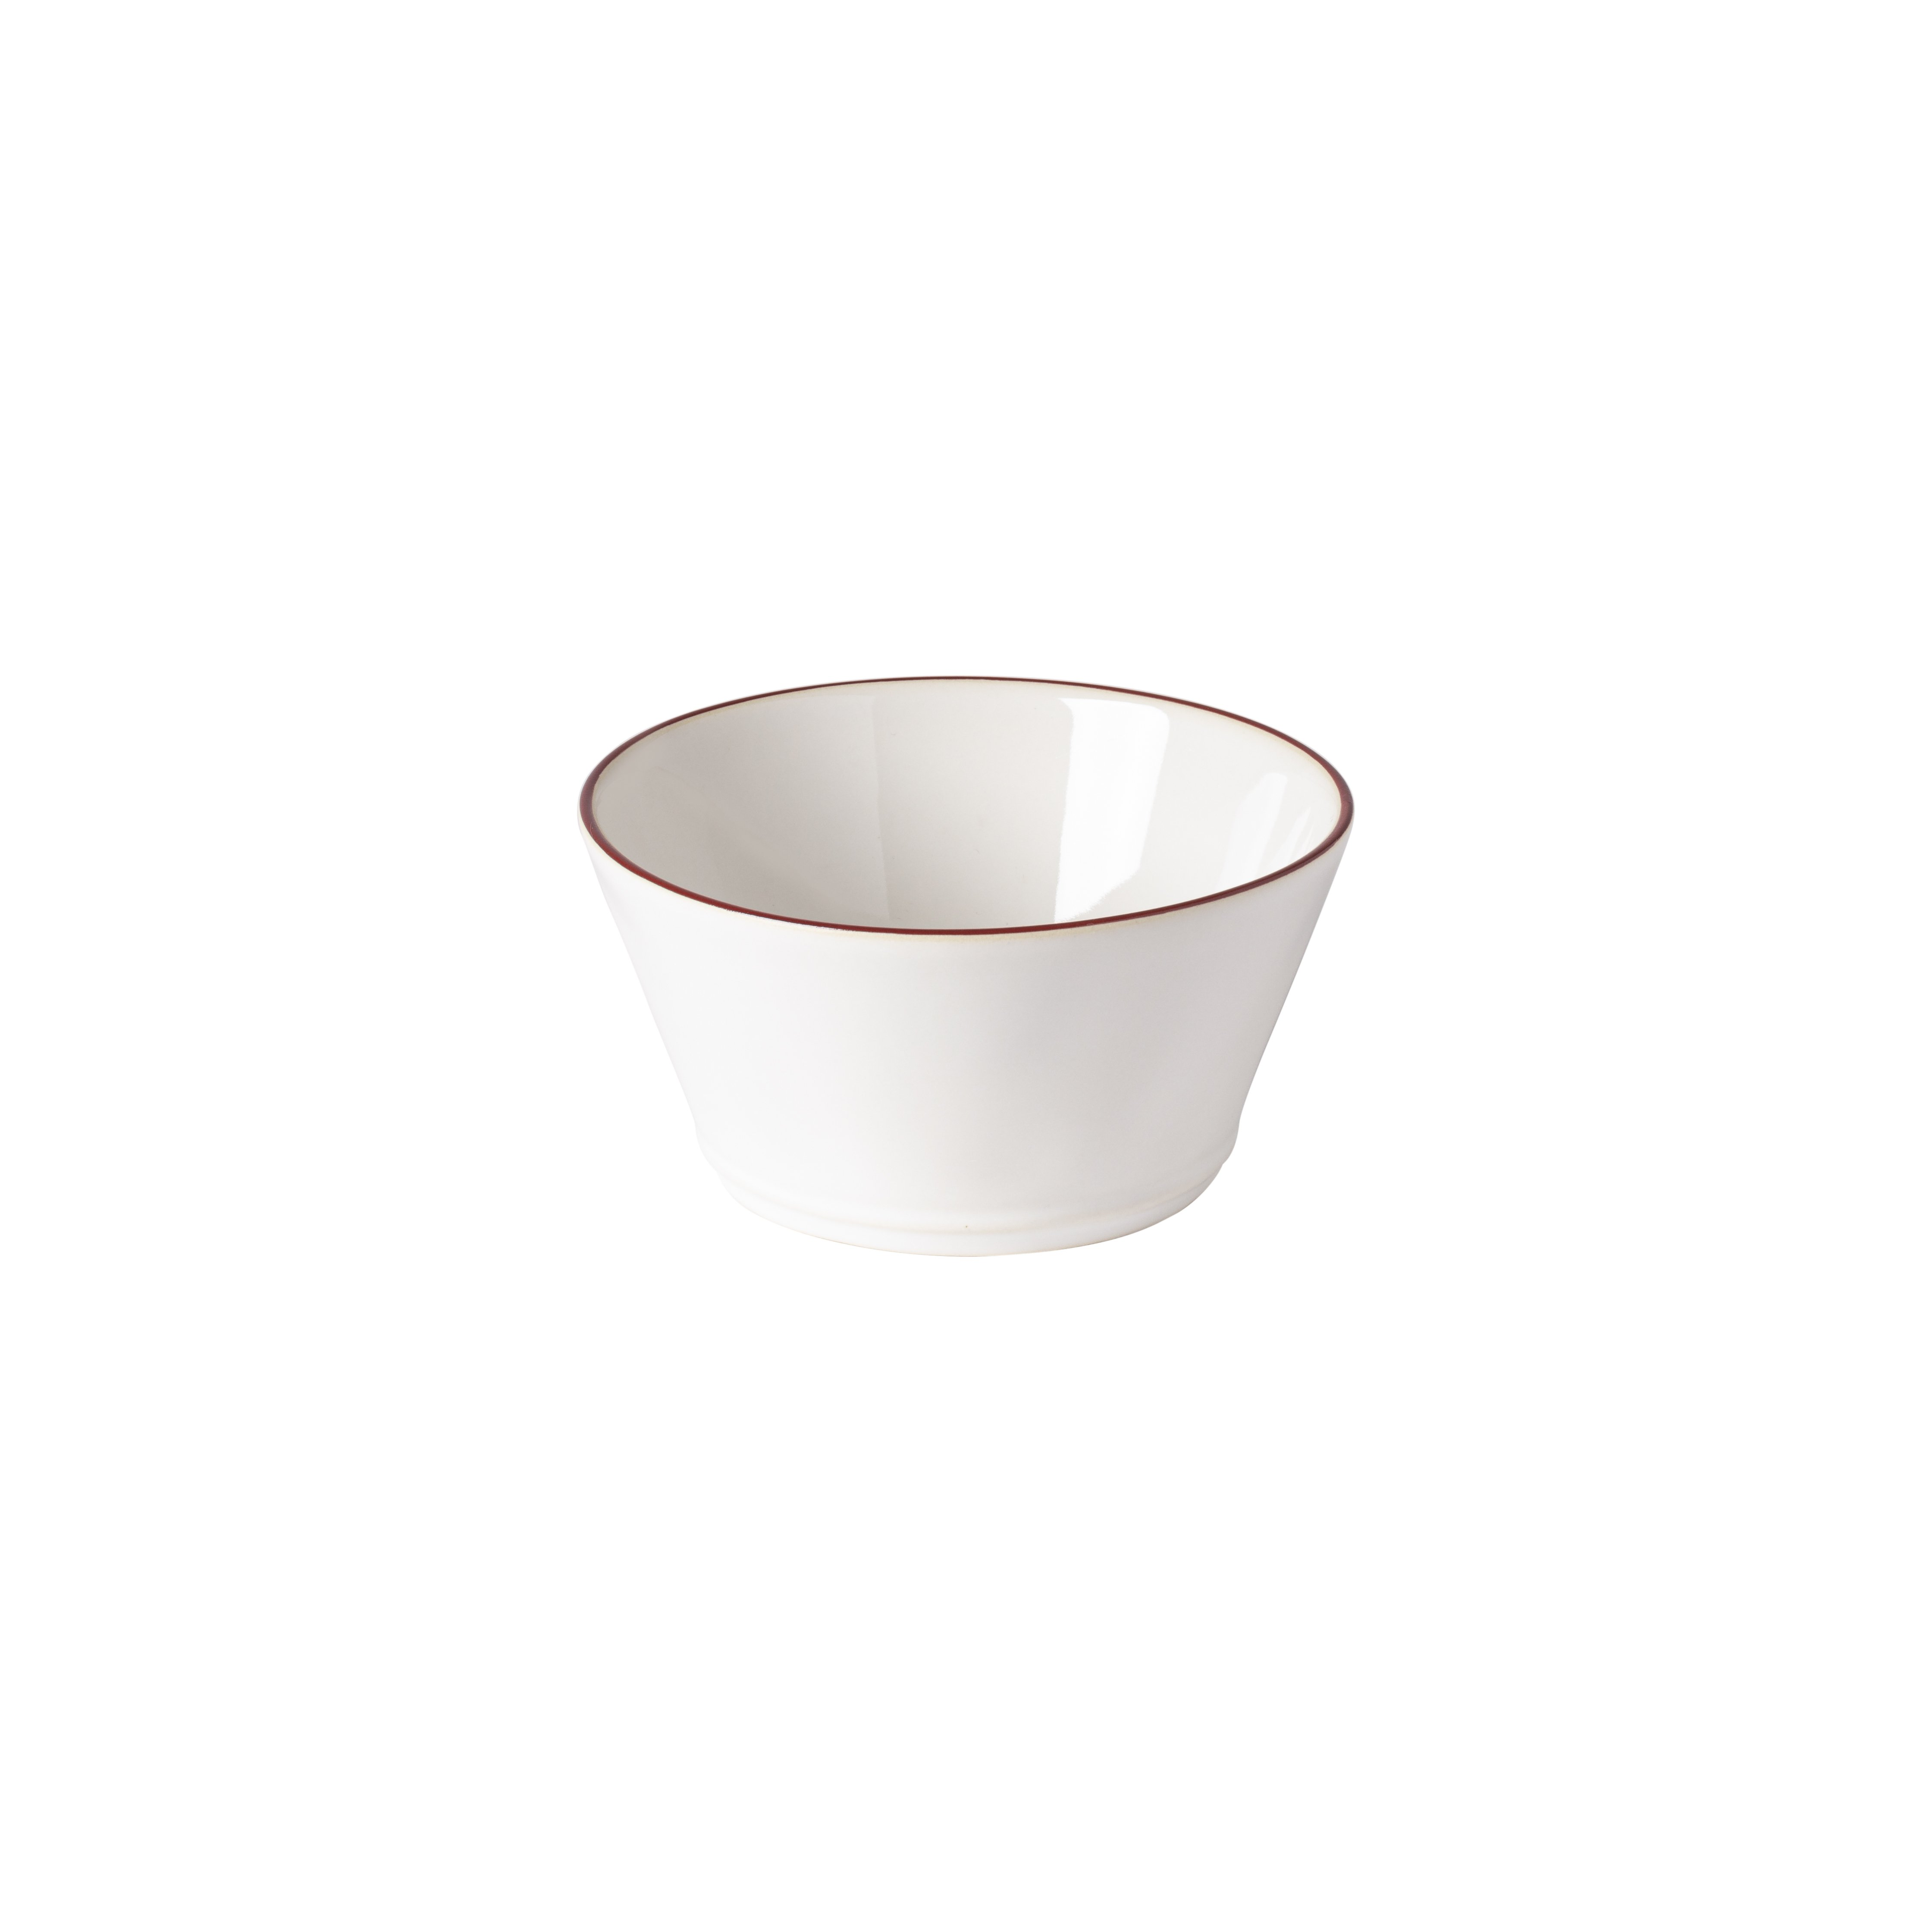 Beja Red And White Cereal Bowls Dinnerware